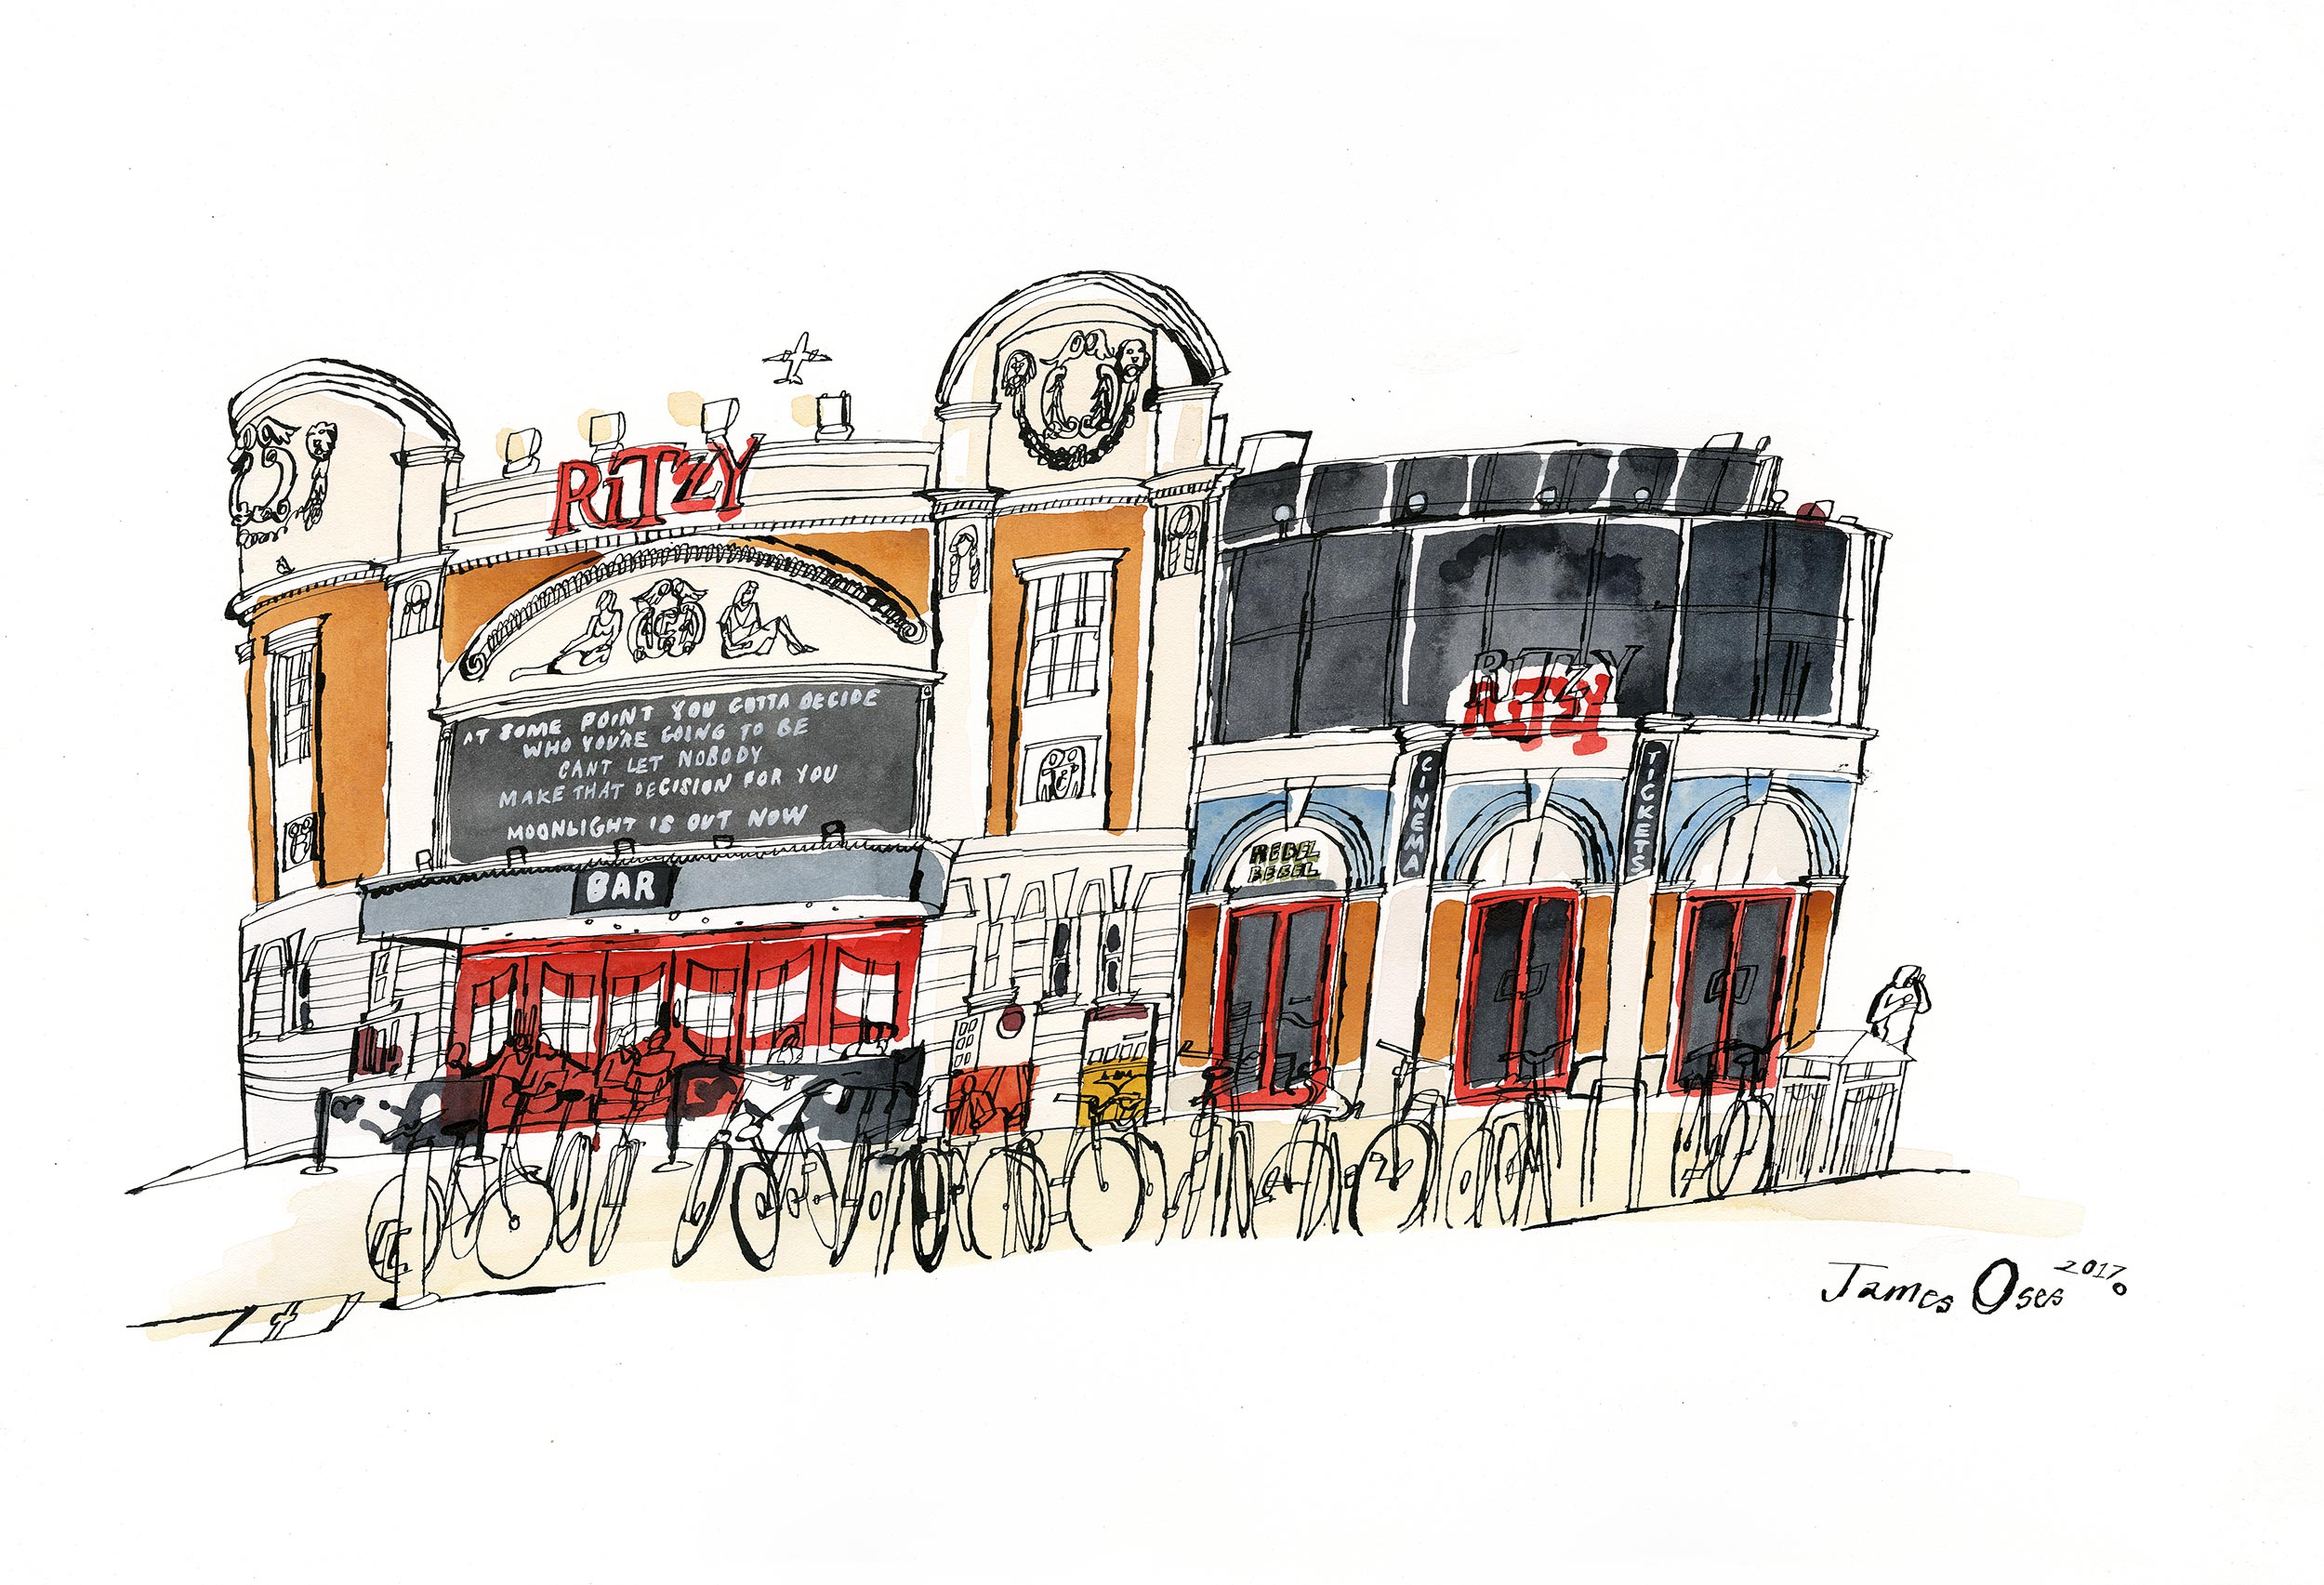 Ritzy Cinema by James Oses